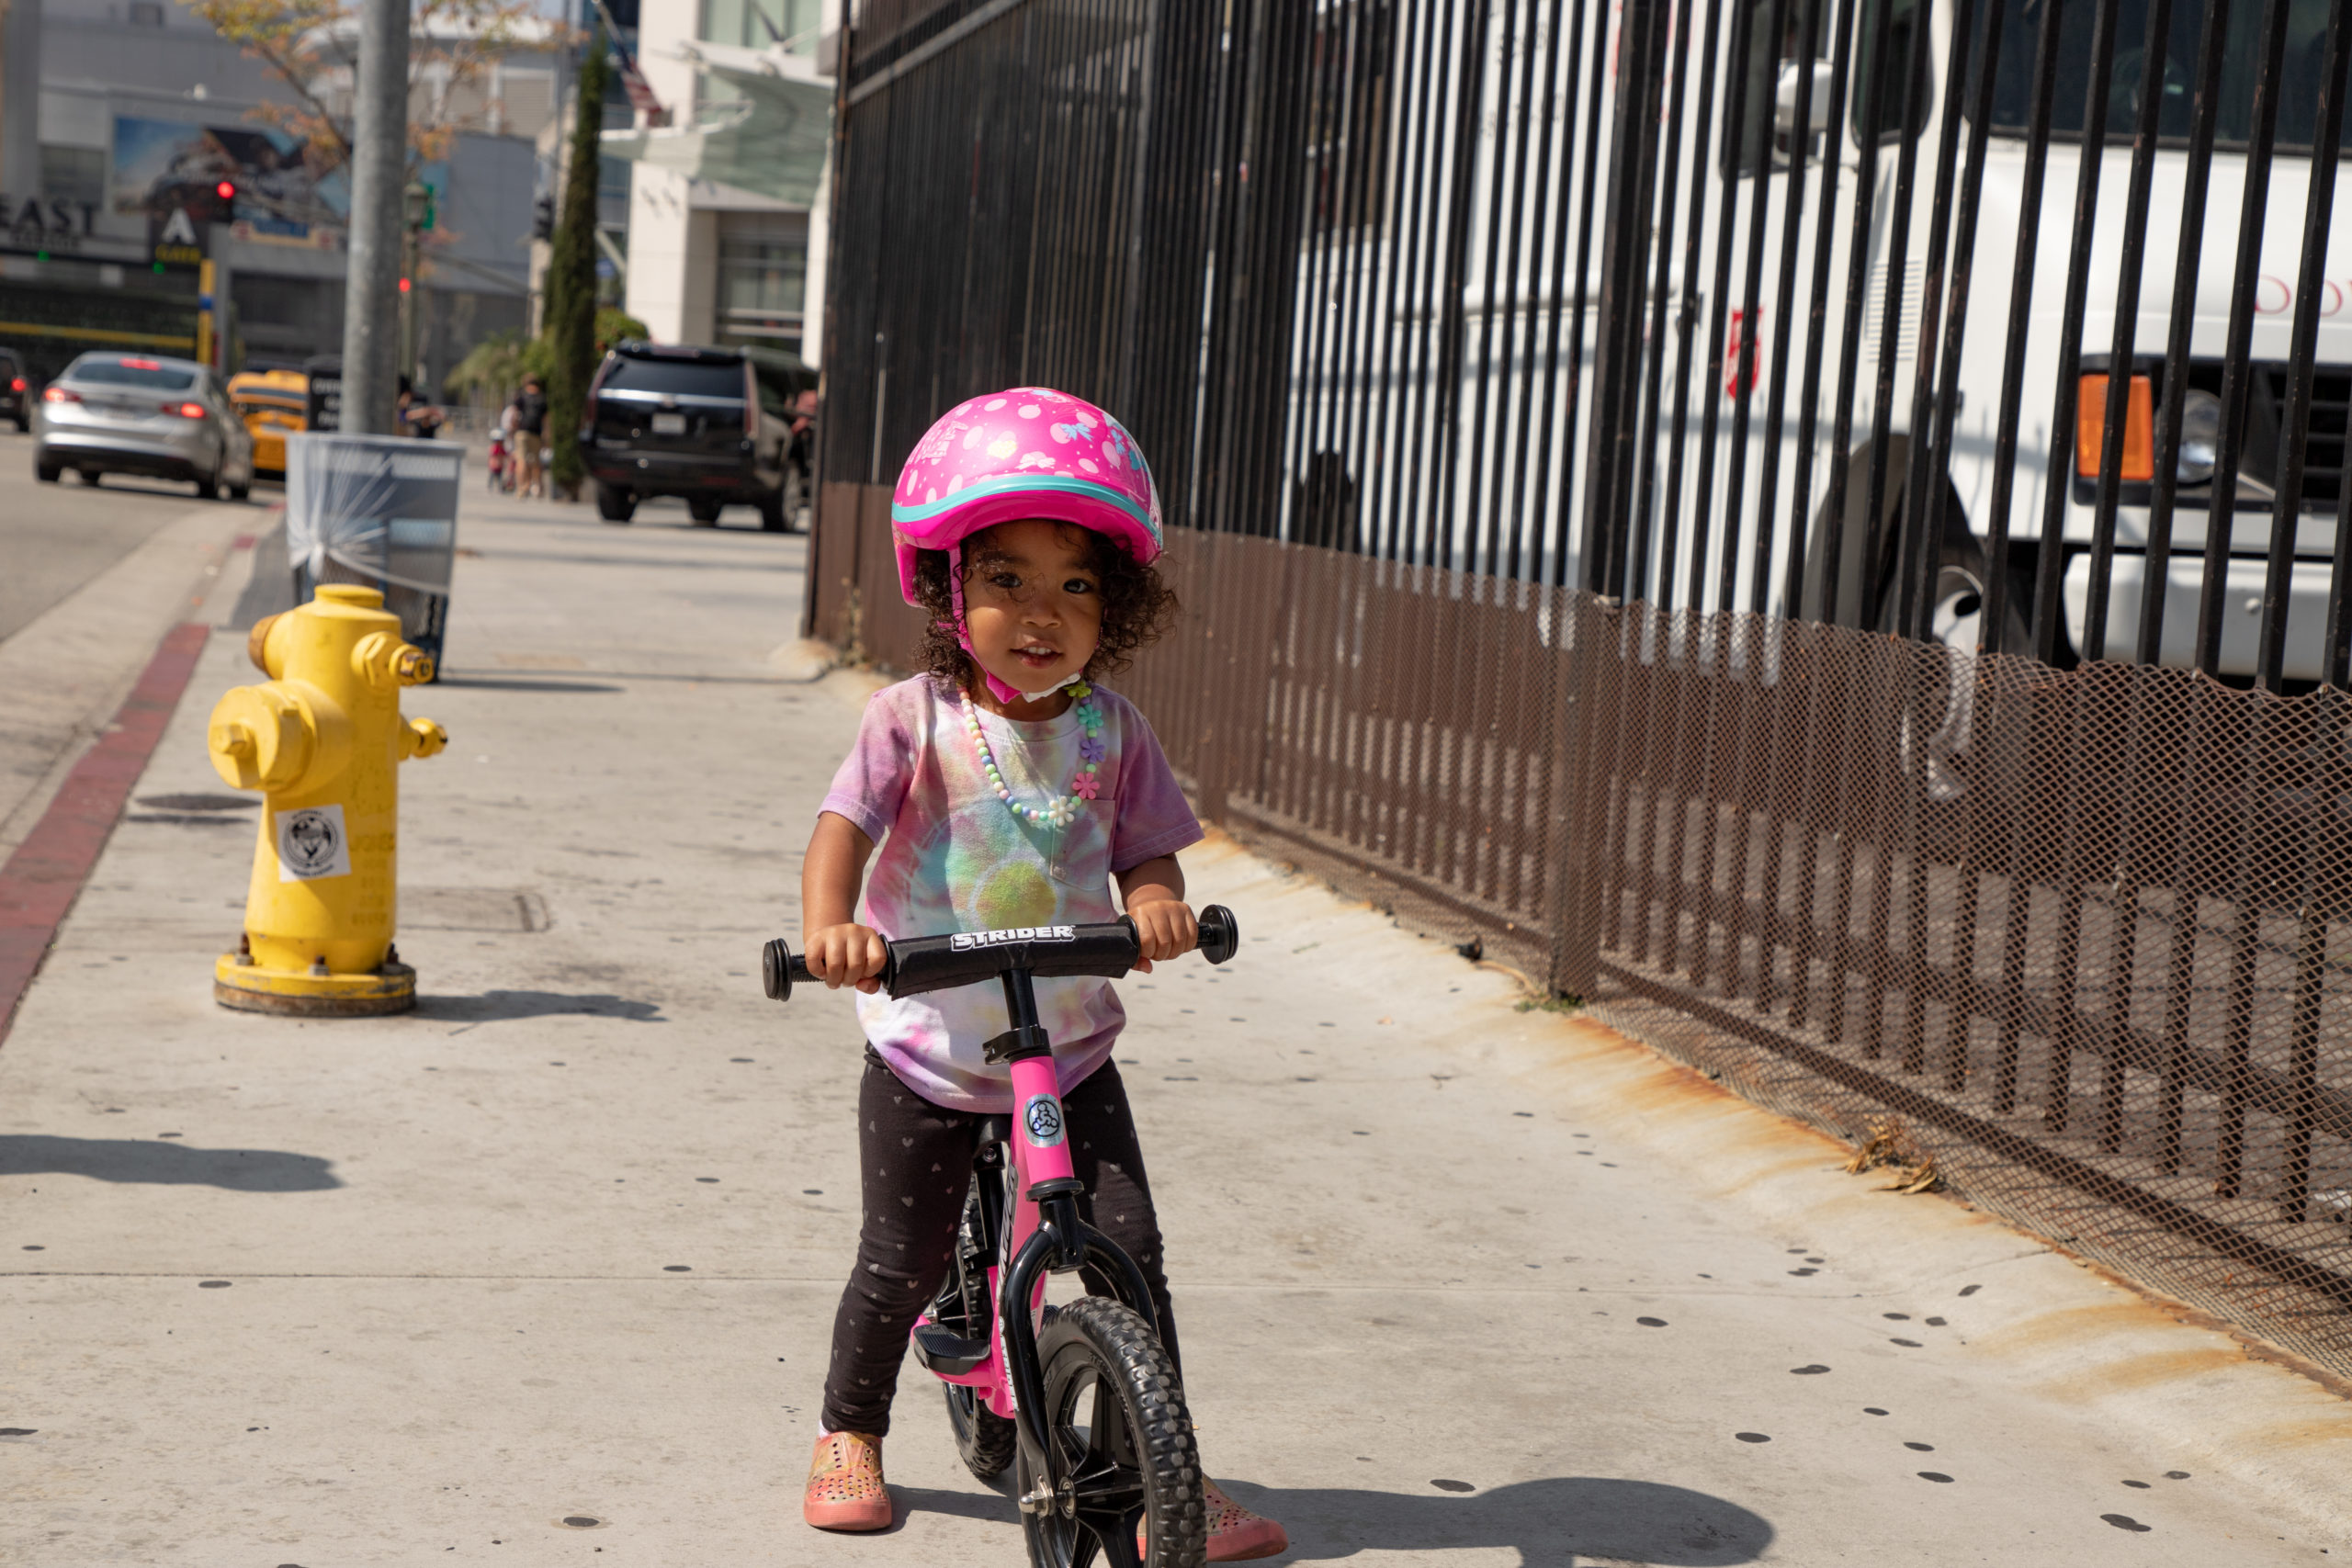 Young girl riding on sidewalk on pink 12 sport